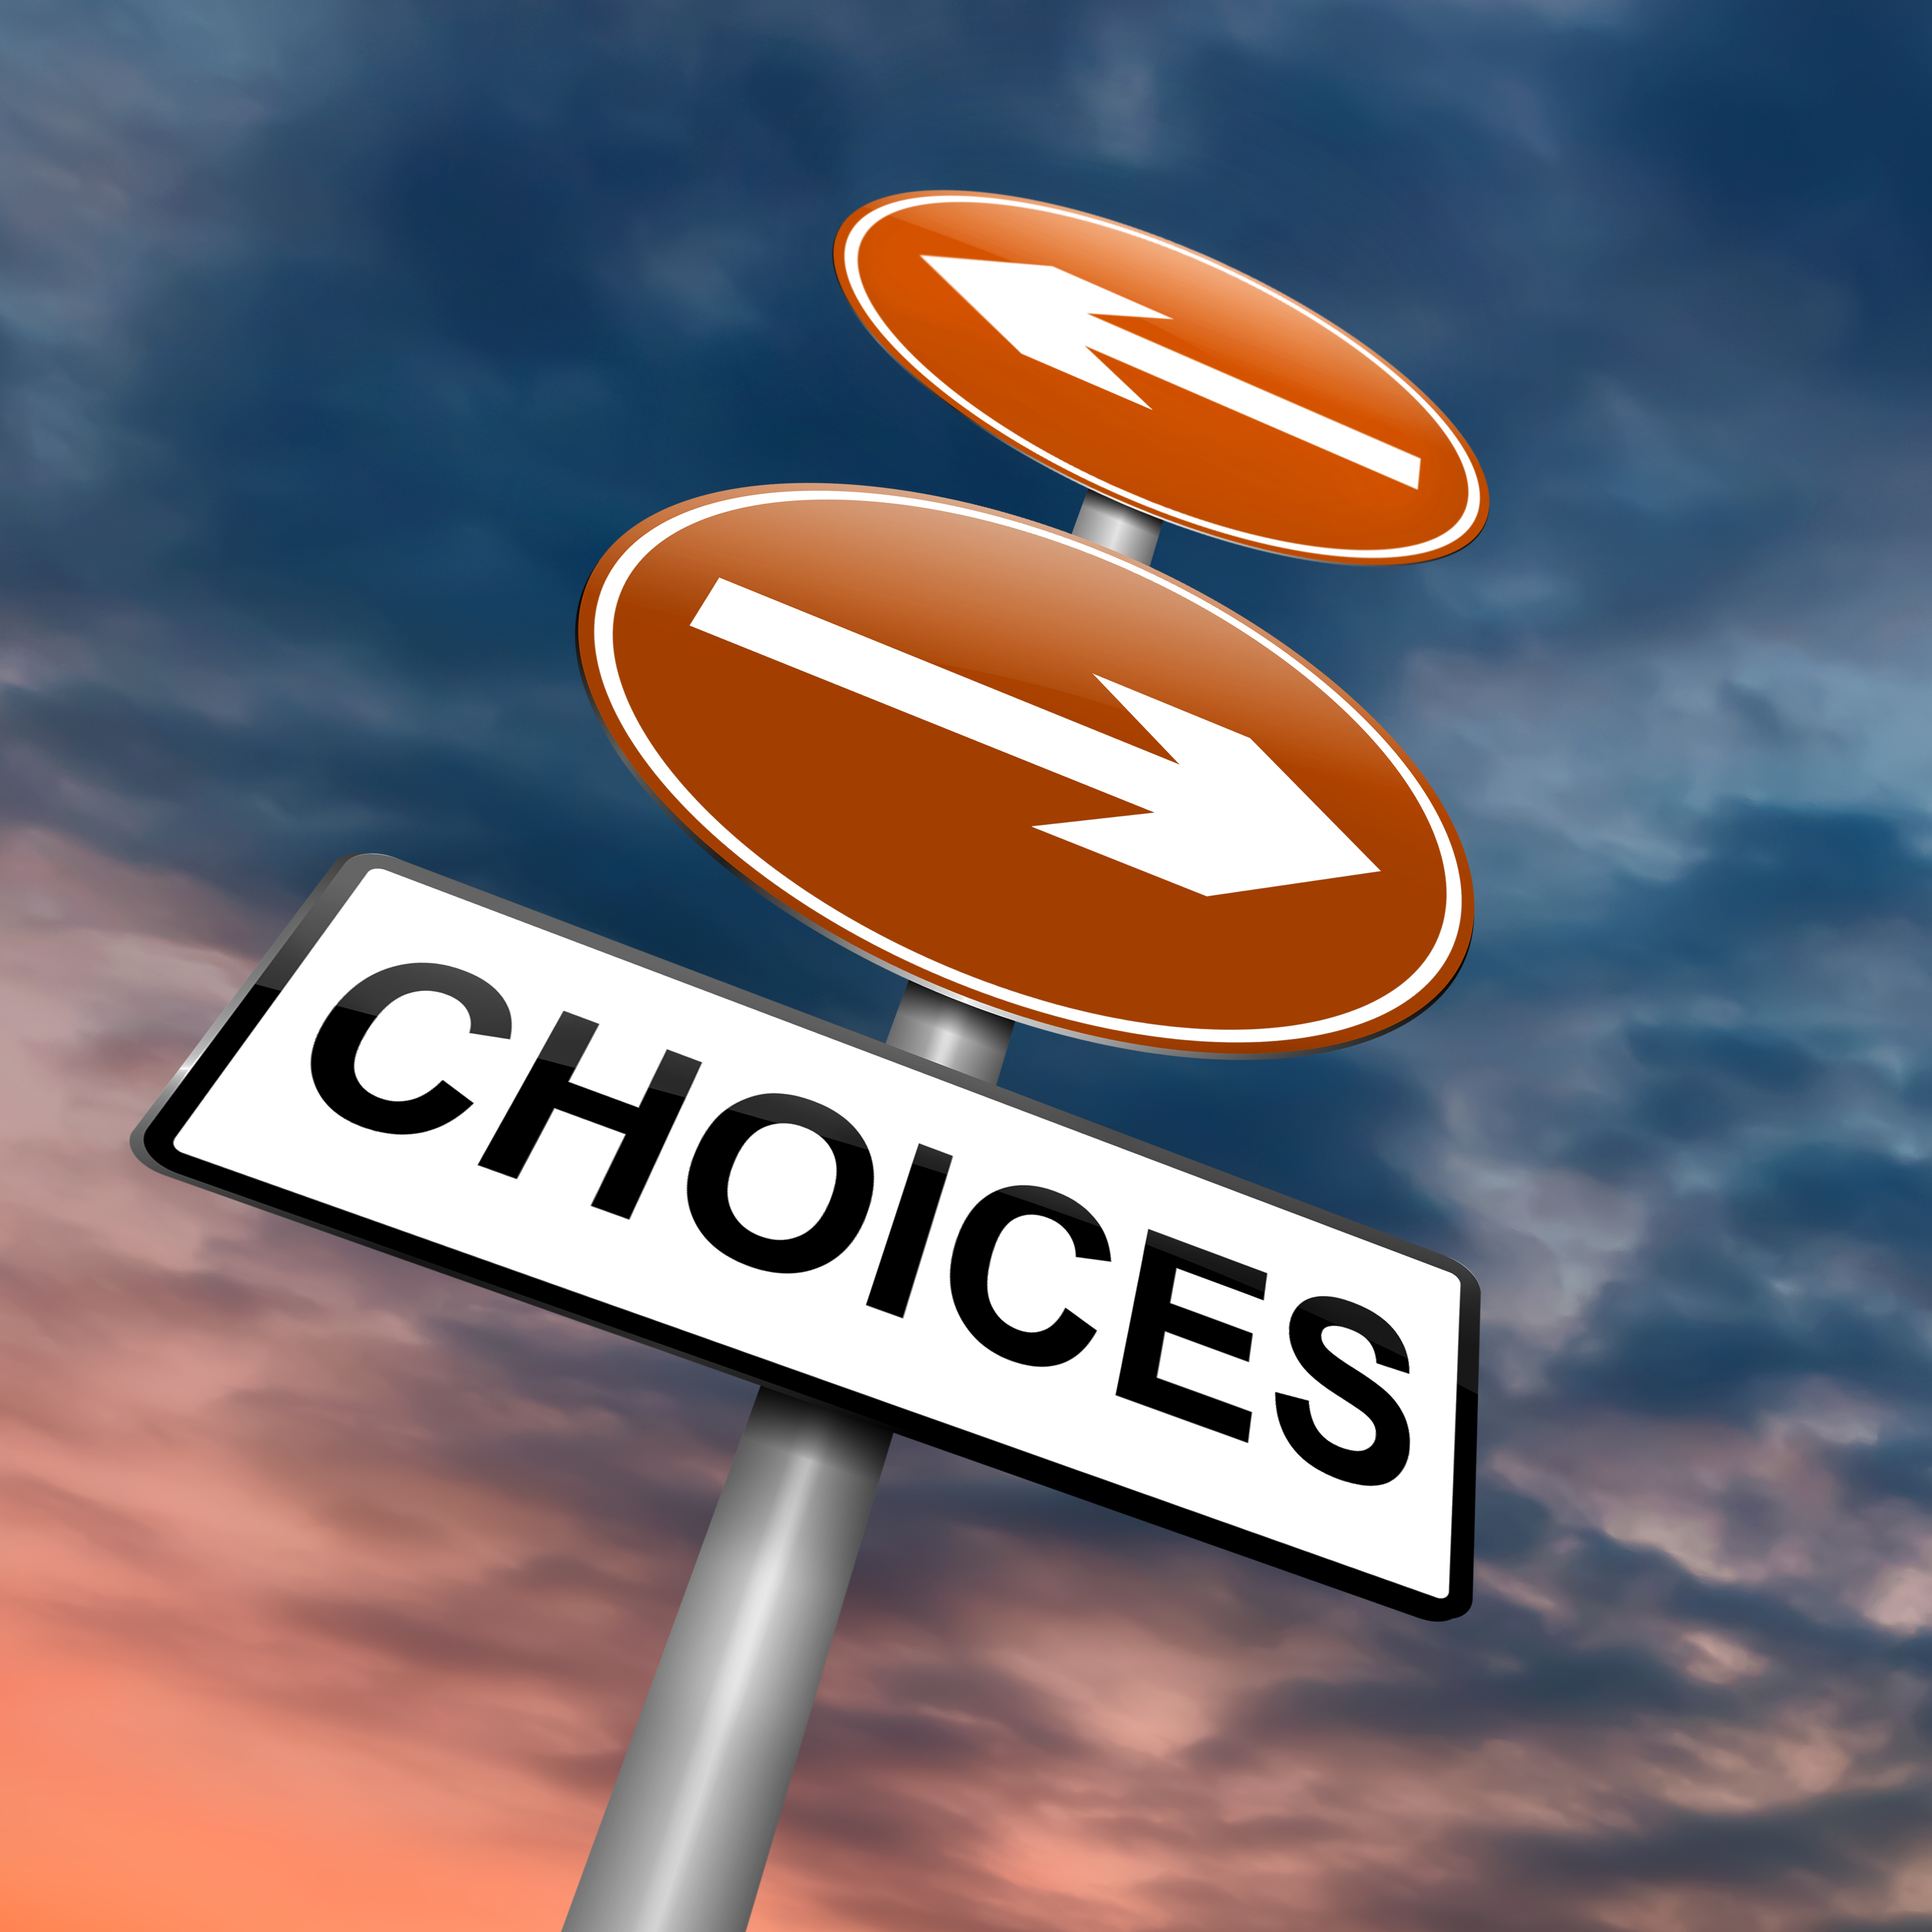 image of a sign showing customer choices